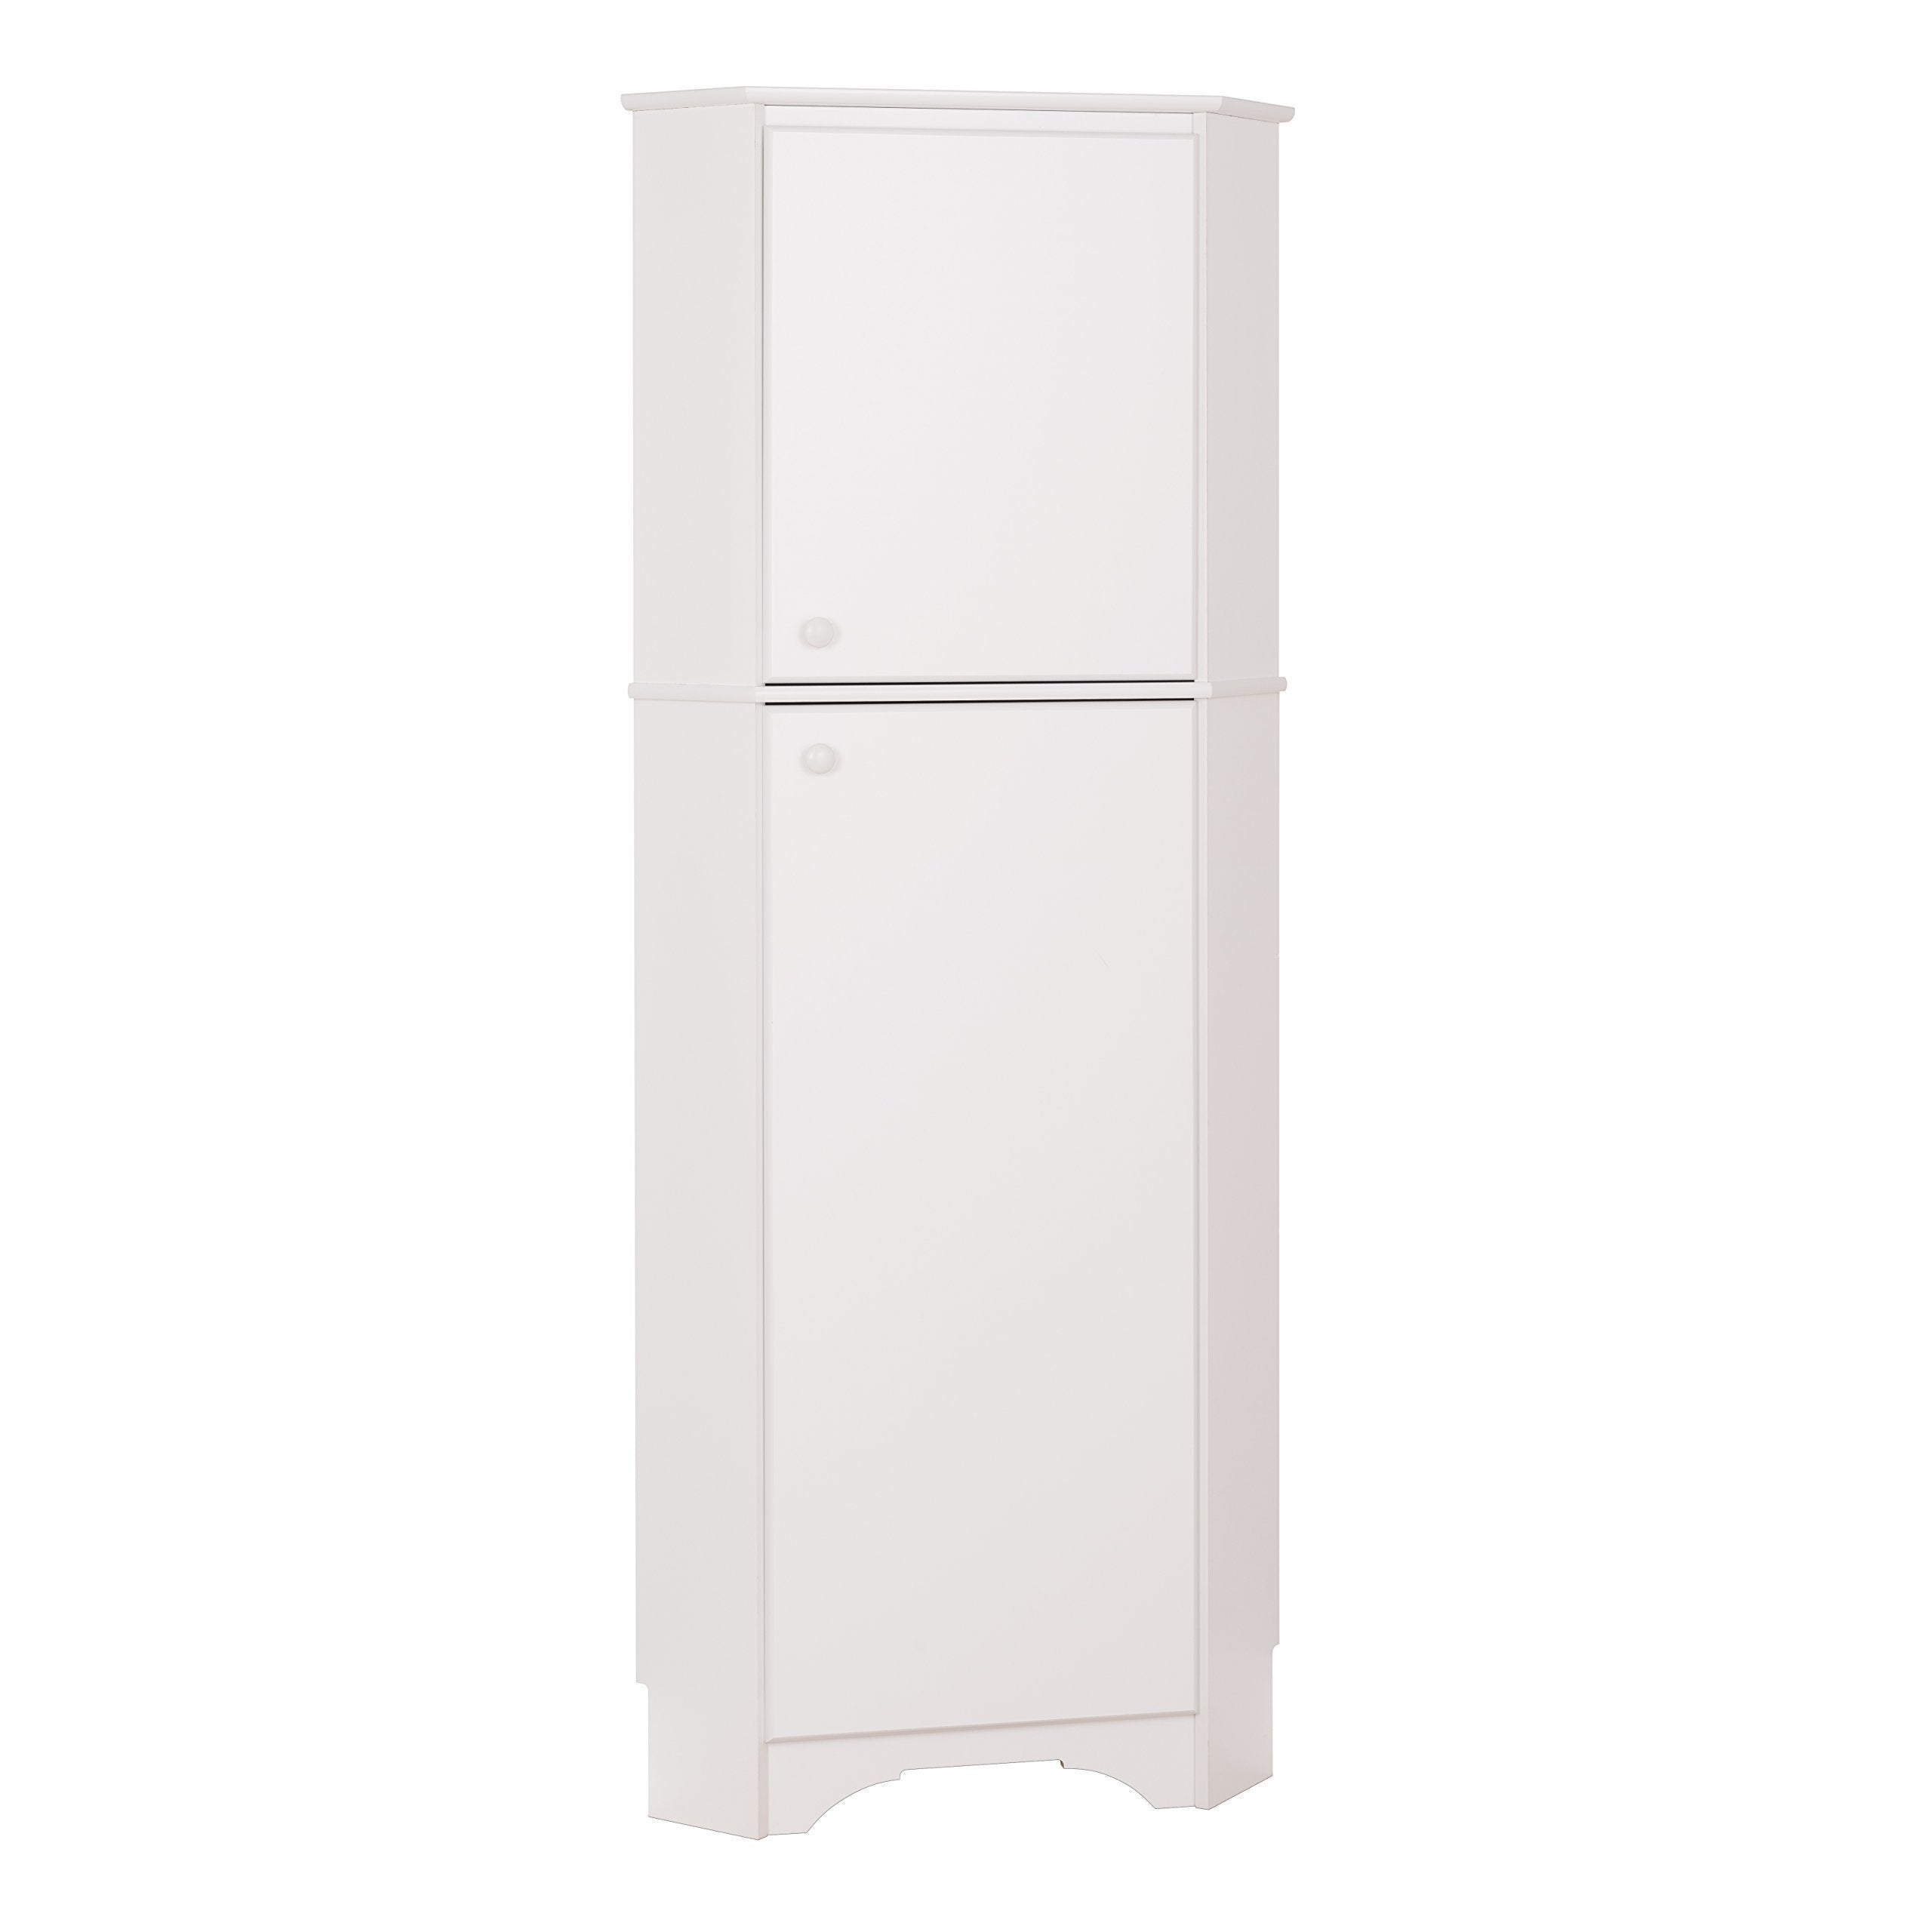 Top rated prepac wscc 0605 1 elite home corner storage cabinet tall 2 door white